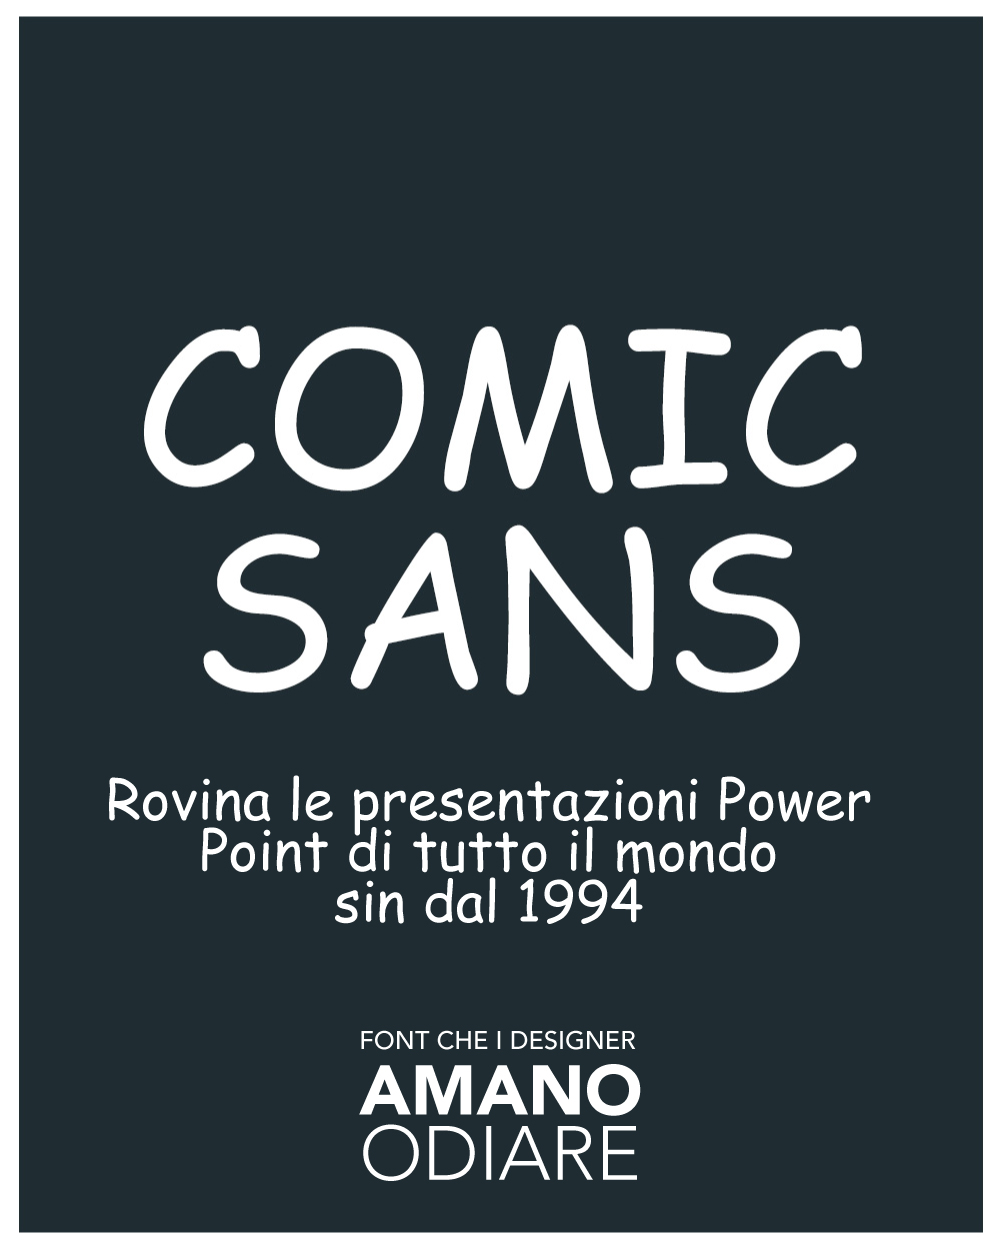 Comic Sans - Rovina le presentazioni Power Point sin dal 1994